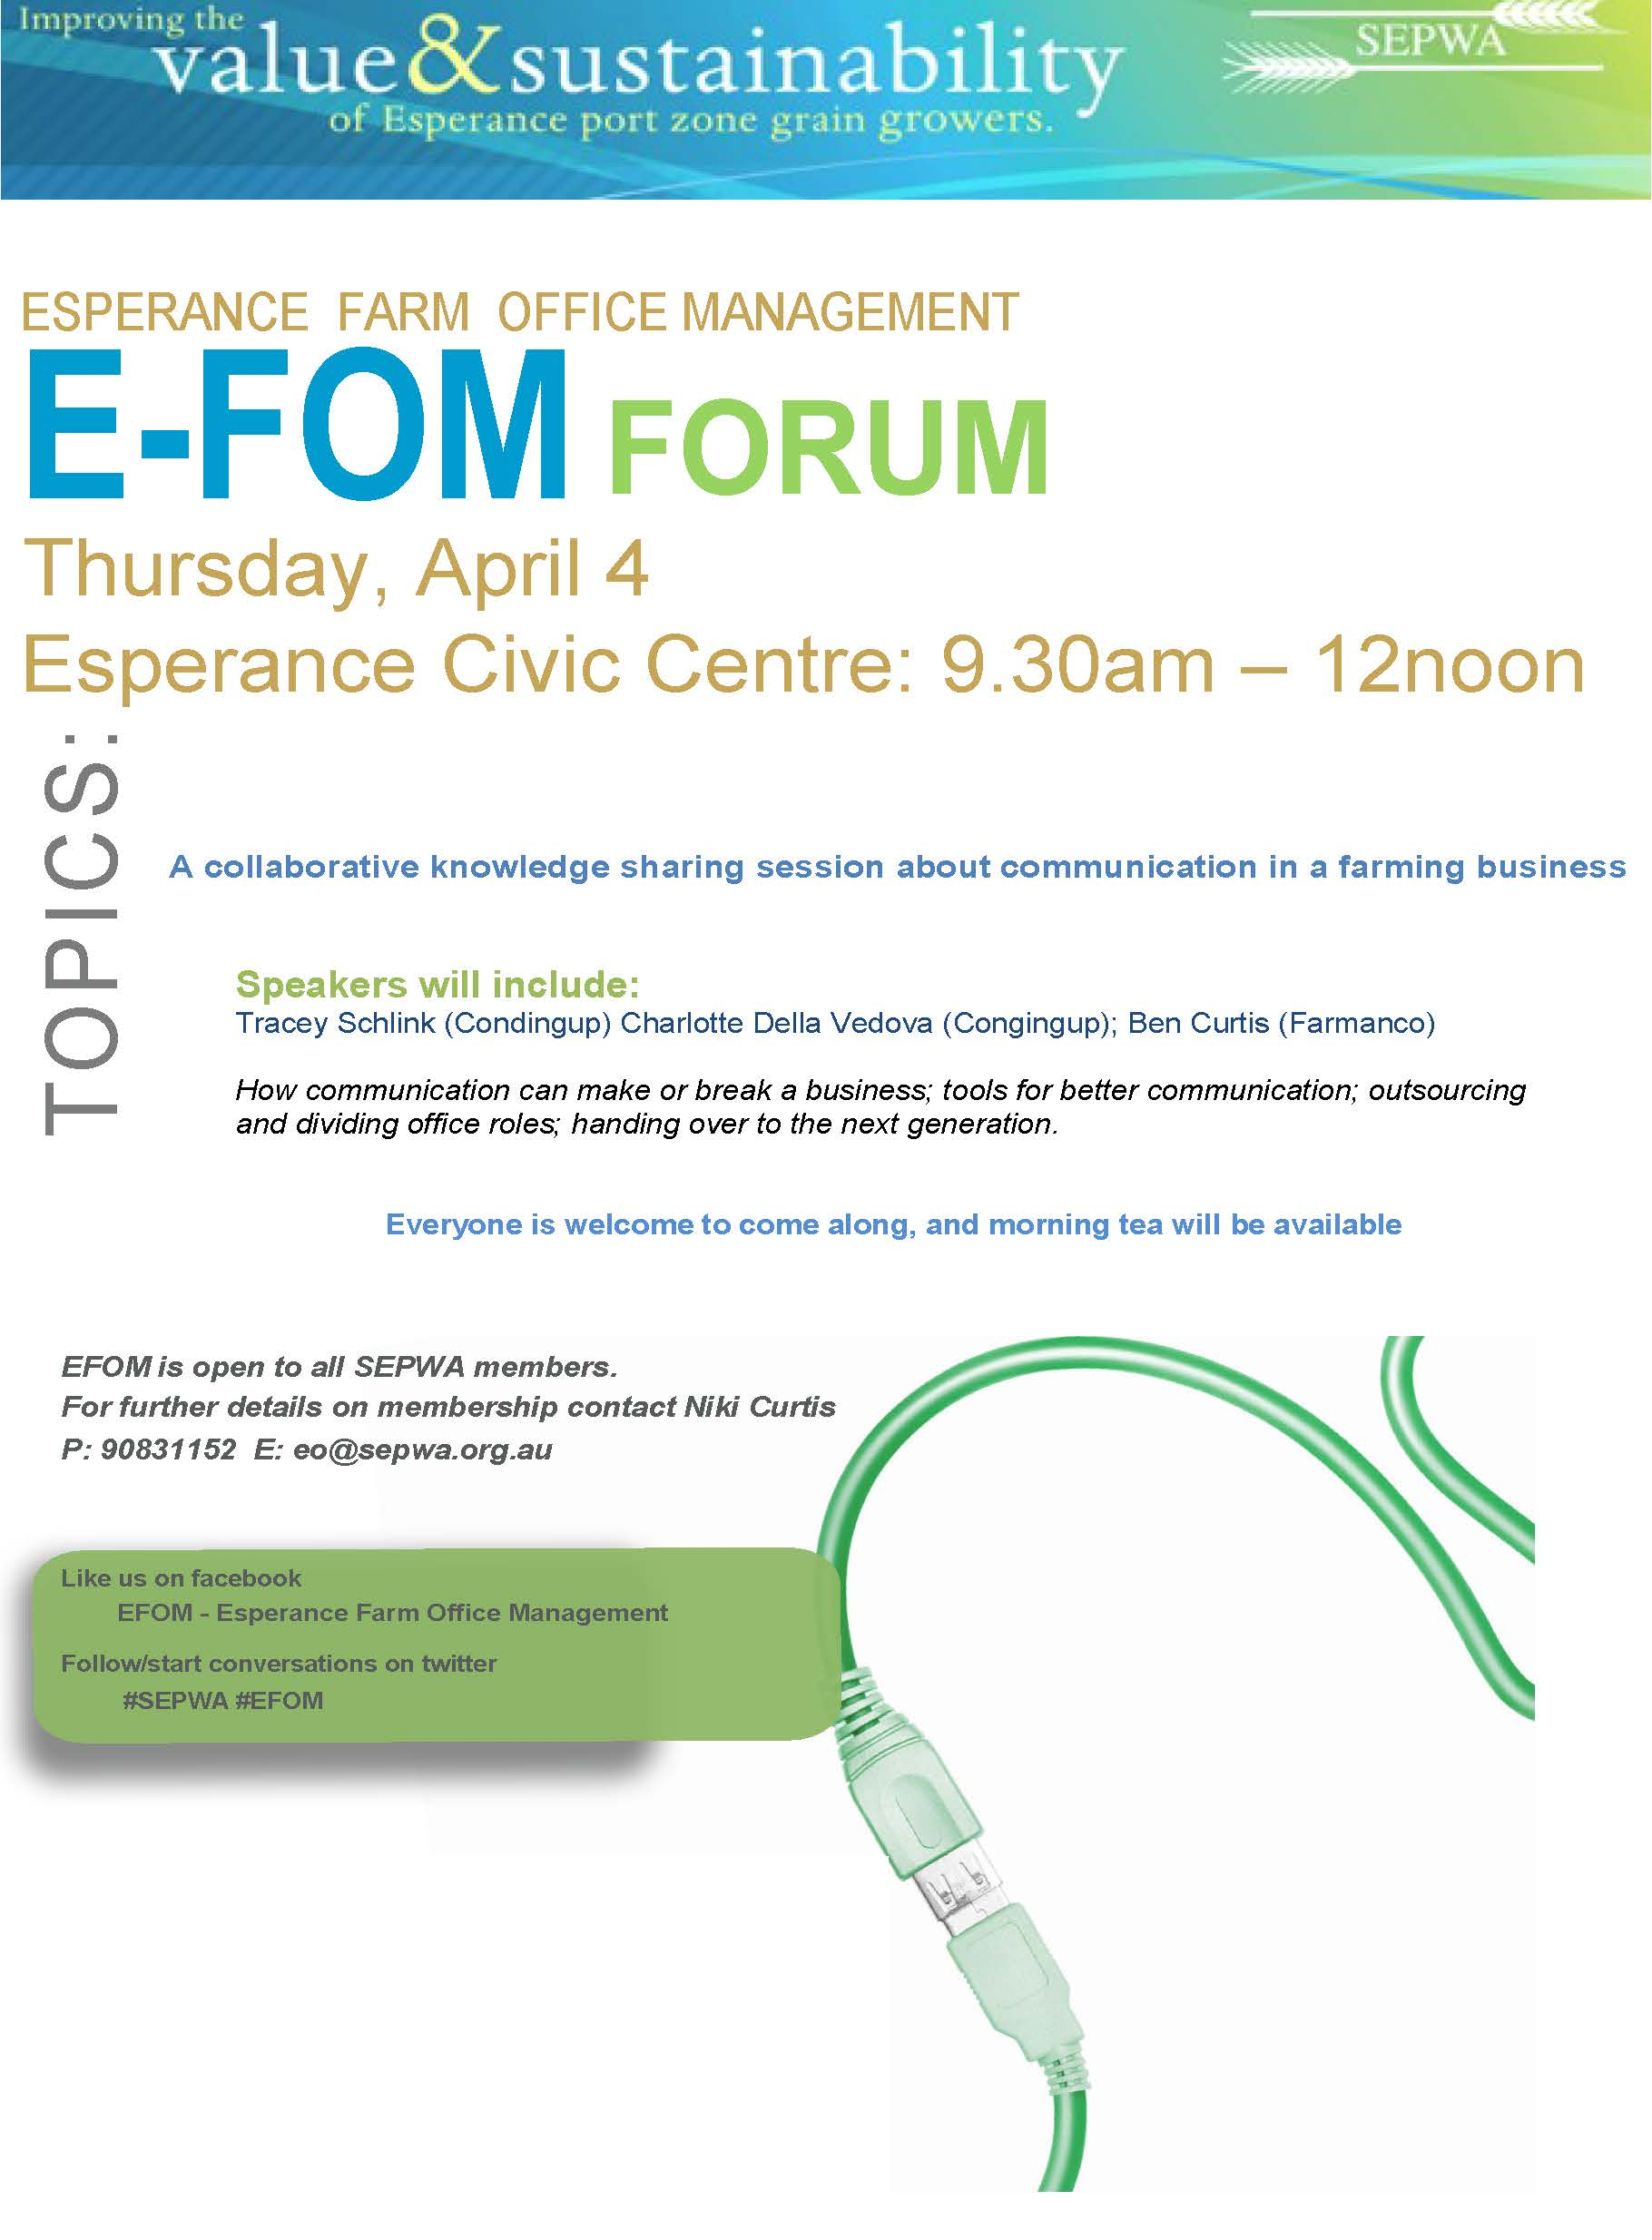 EFOM Forum April 2019